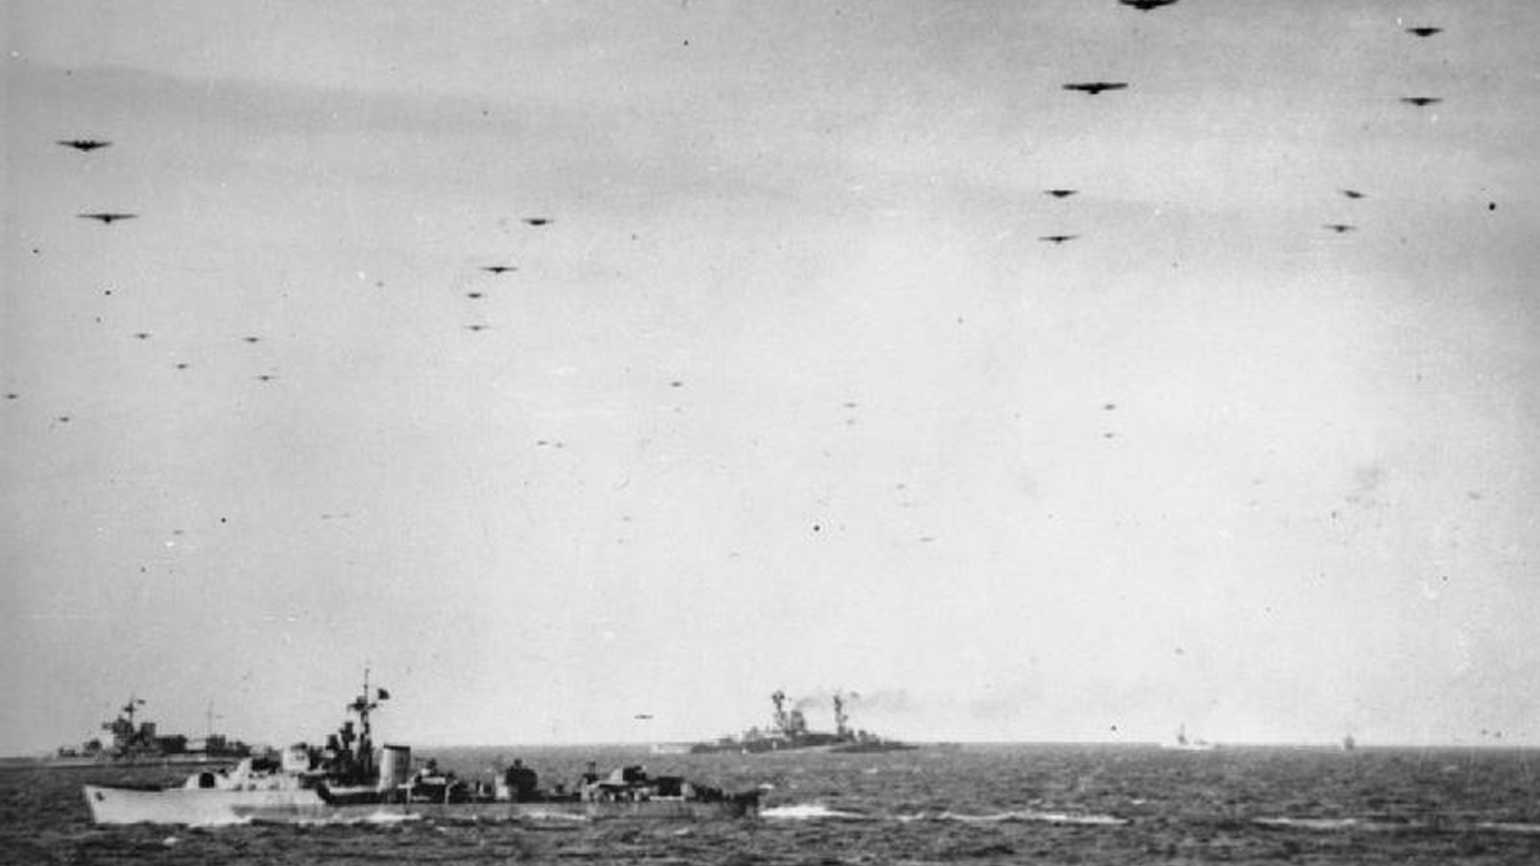 The Royal Navy during the Second World War- Operation Overlord (the Normandy Landings)- D-day 6 June 1944 Glider borne troops passing over units of the Royal Navy on their way to the invasion beaches of Normandy. In the background are the battleships HMS